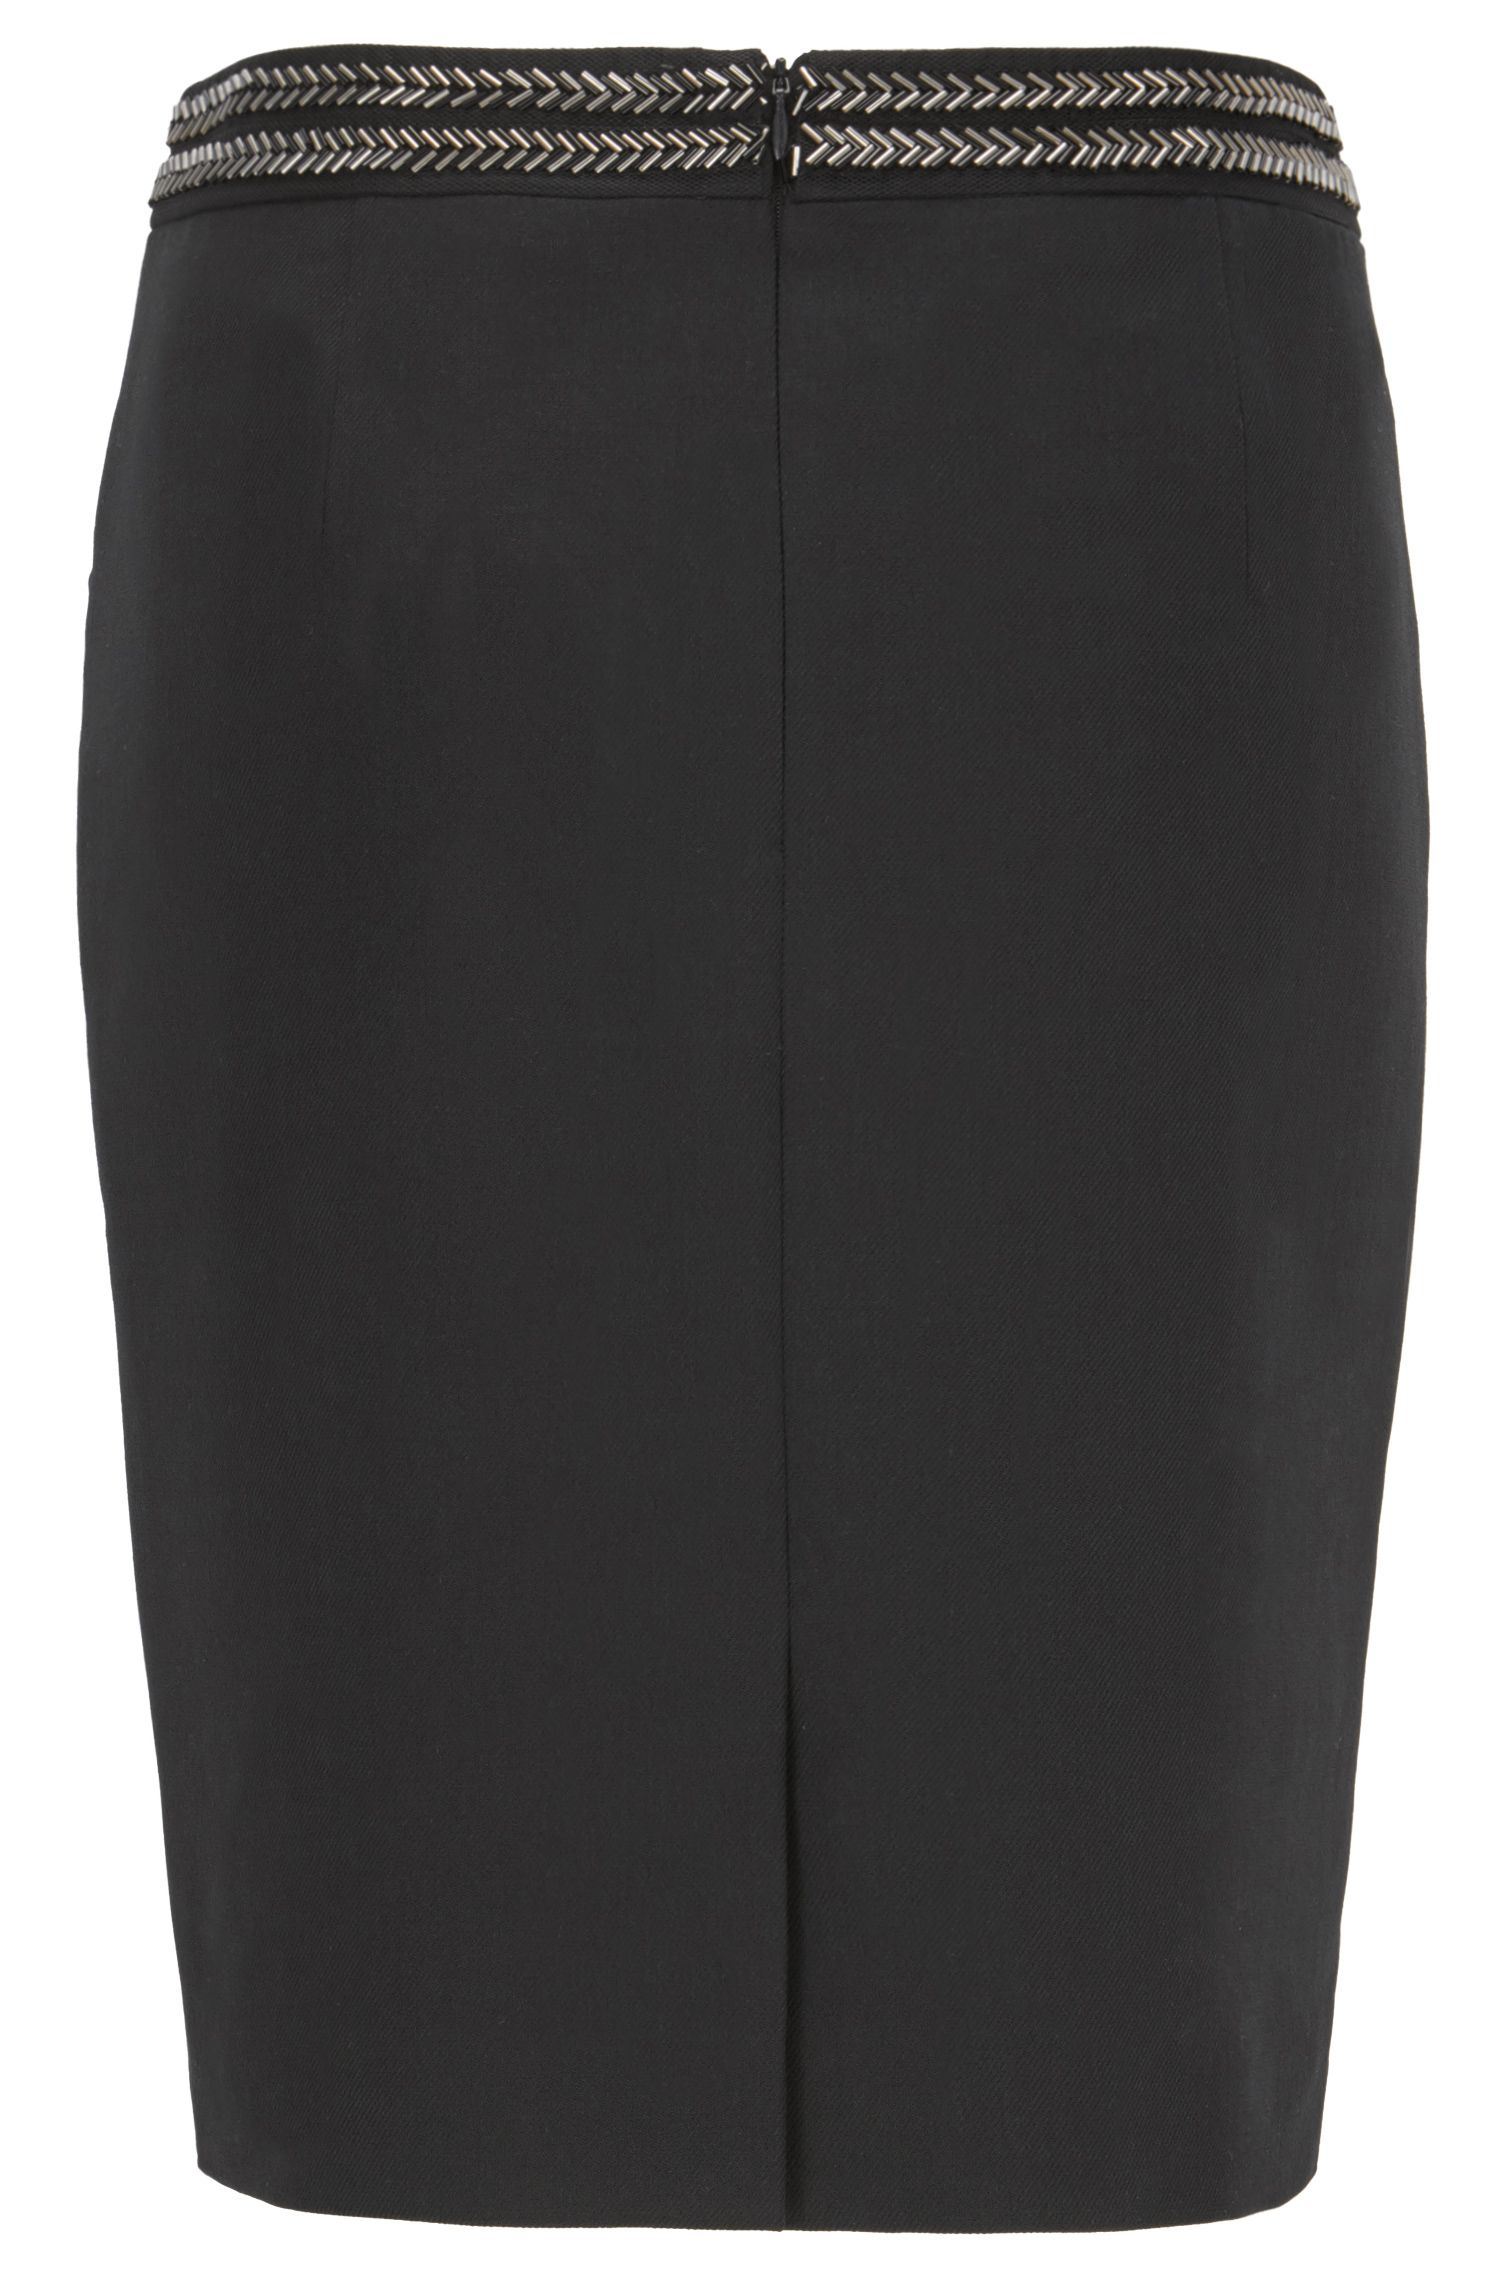 Embellished pencil skirt in a cotton blend